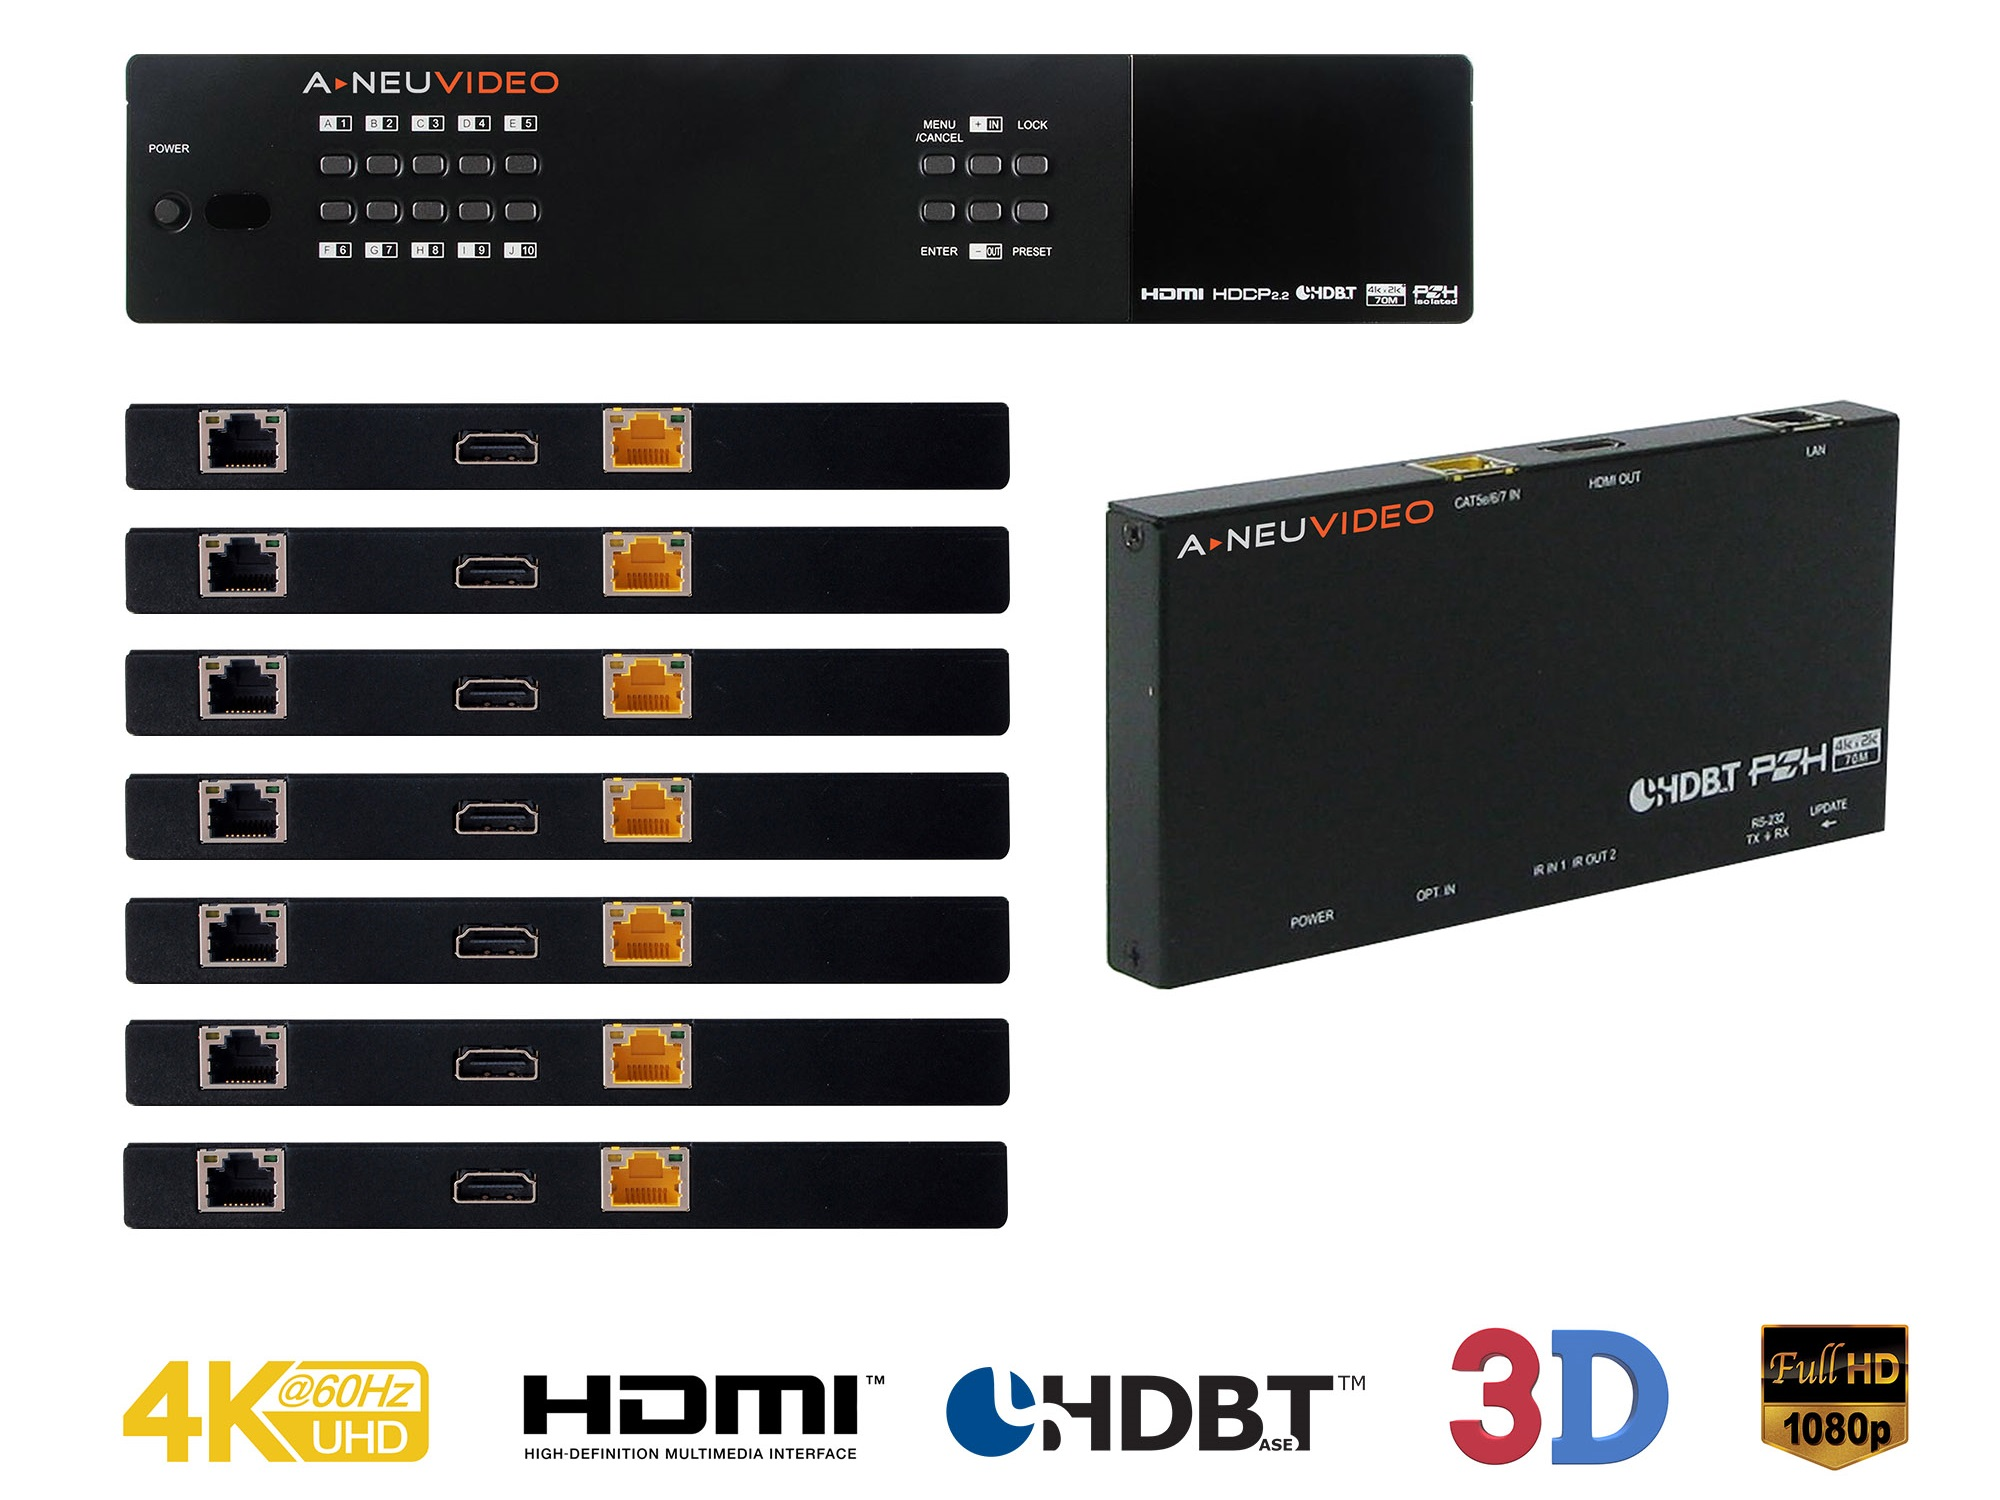 ANI-1082UHD-KIT 10x10 HDMI/HDBaseT 4K/60Hz and Audio Matrix Routing Switcher Kit by A-NeuVideo